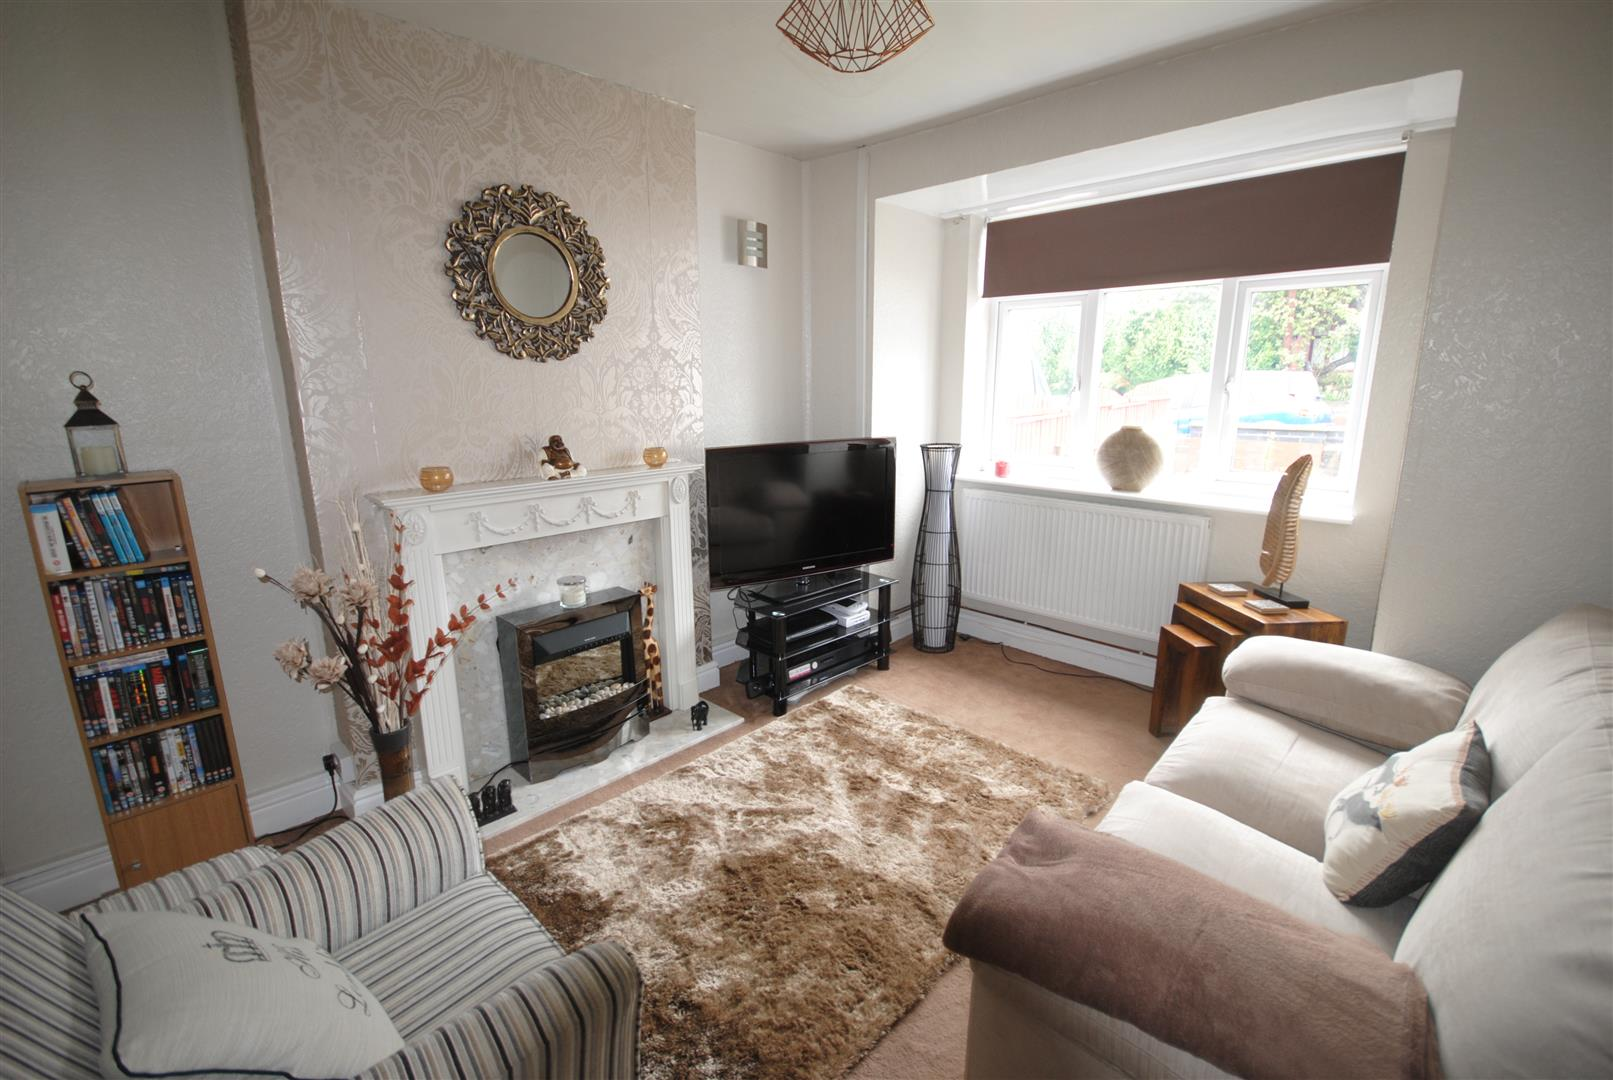 3 Bedrooms Property for sale in Baytree Road, Wigan